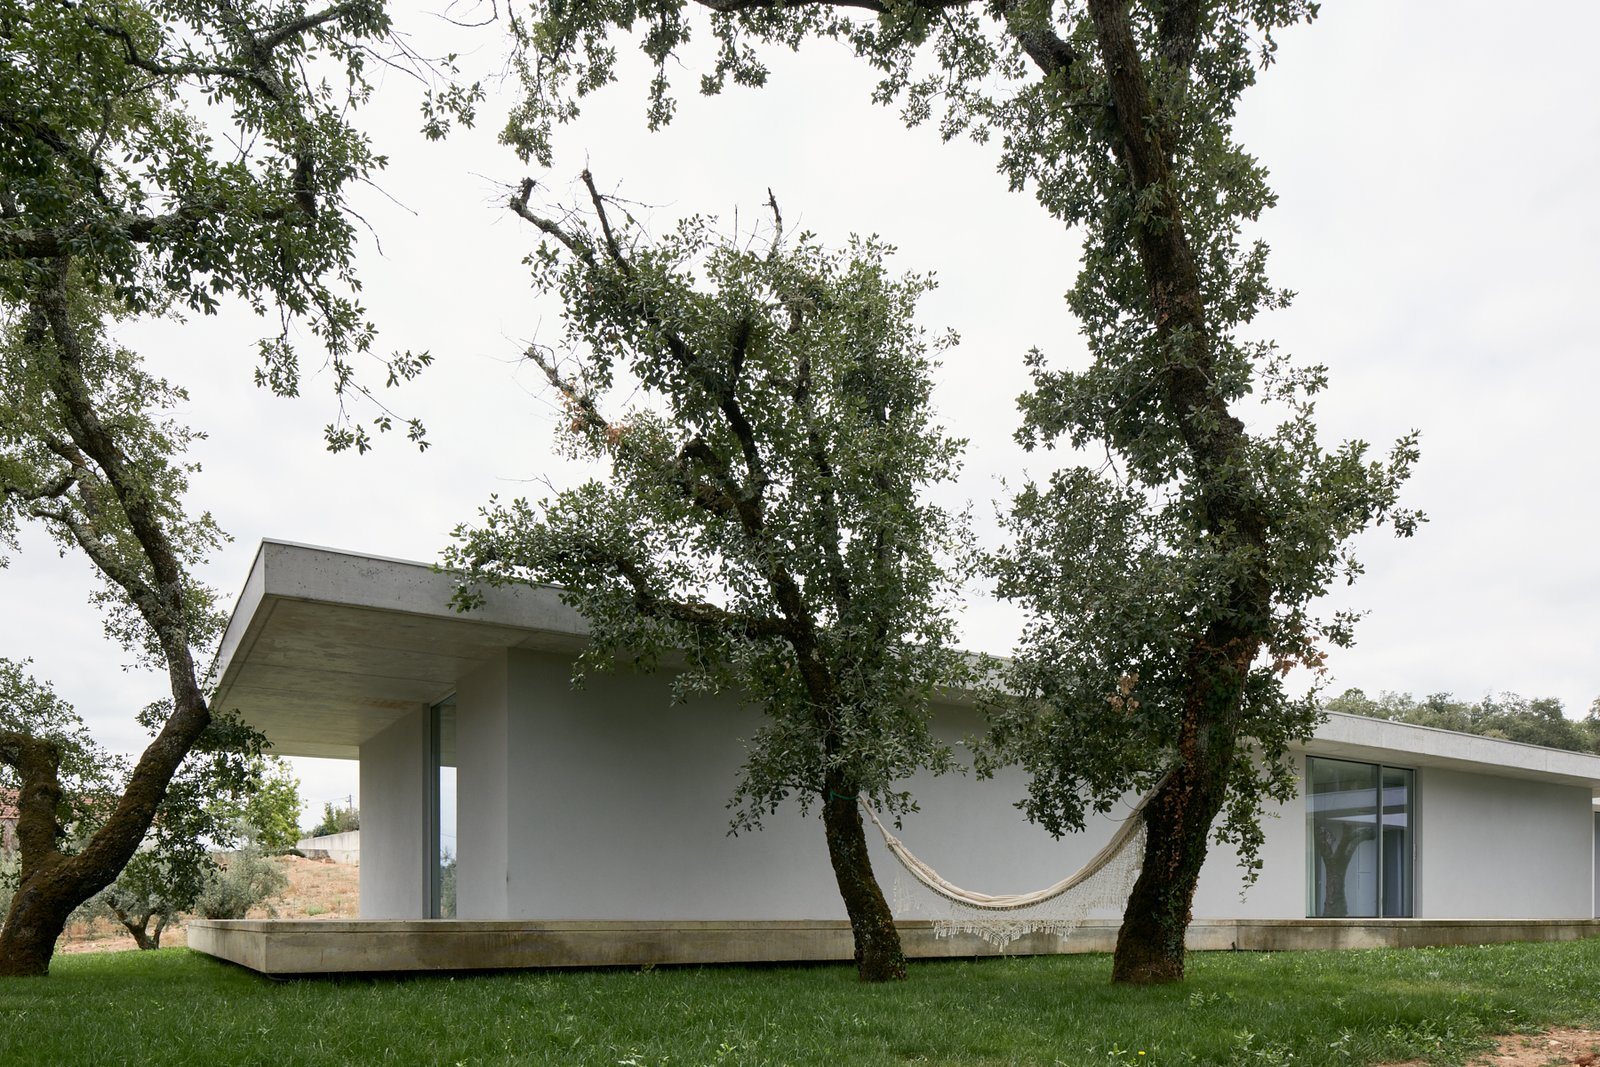 Outdoor, Concrete Pools, Tubs, Shower, and Grass  Fanu House